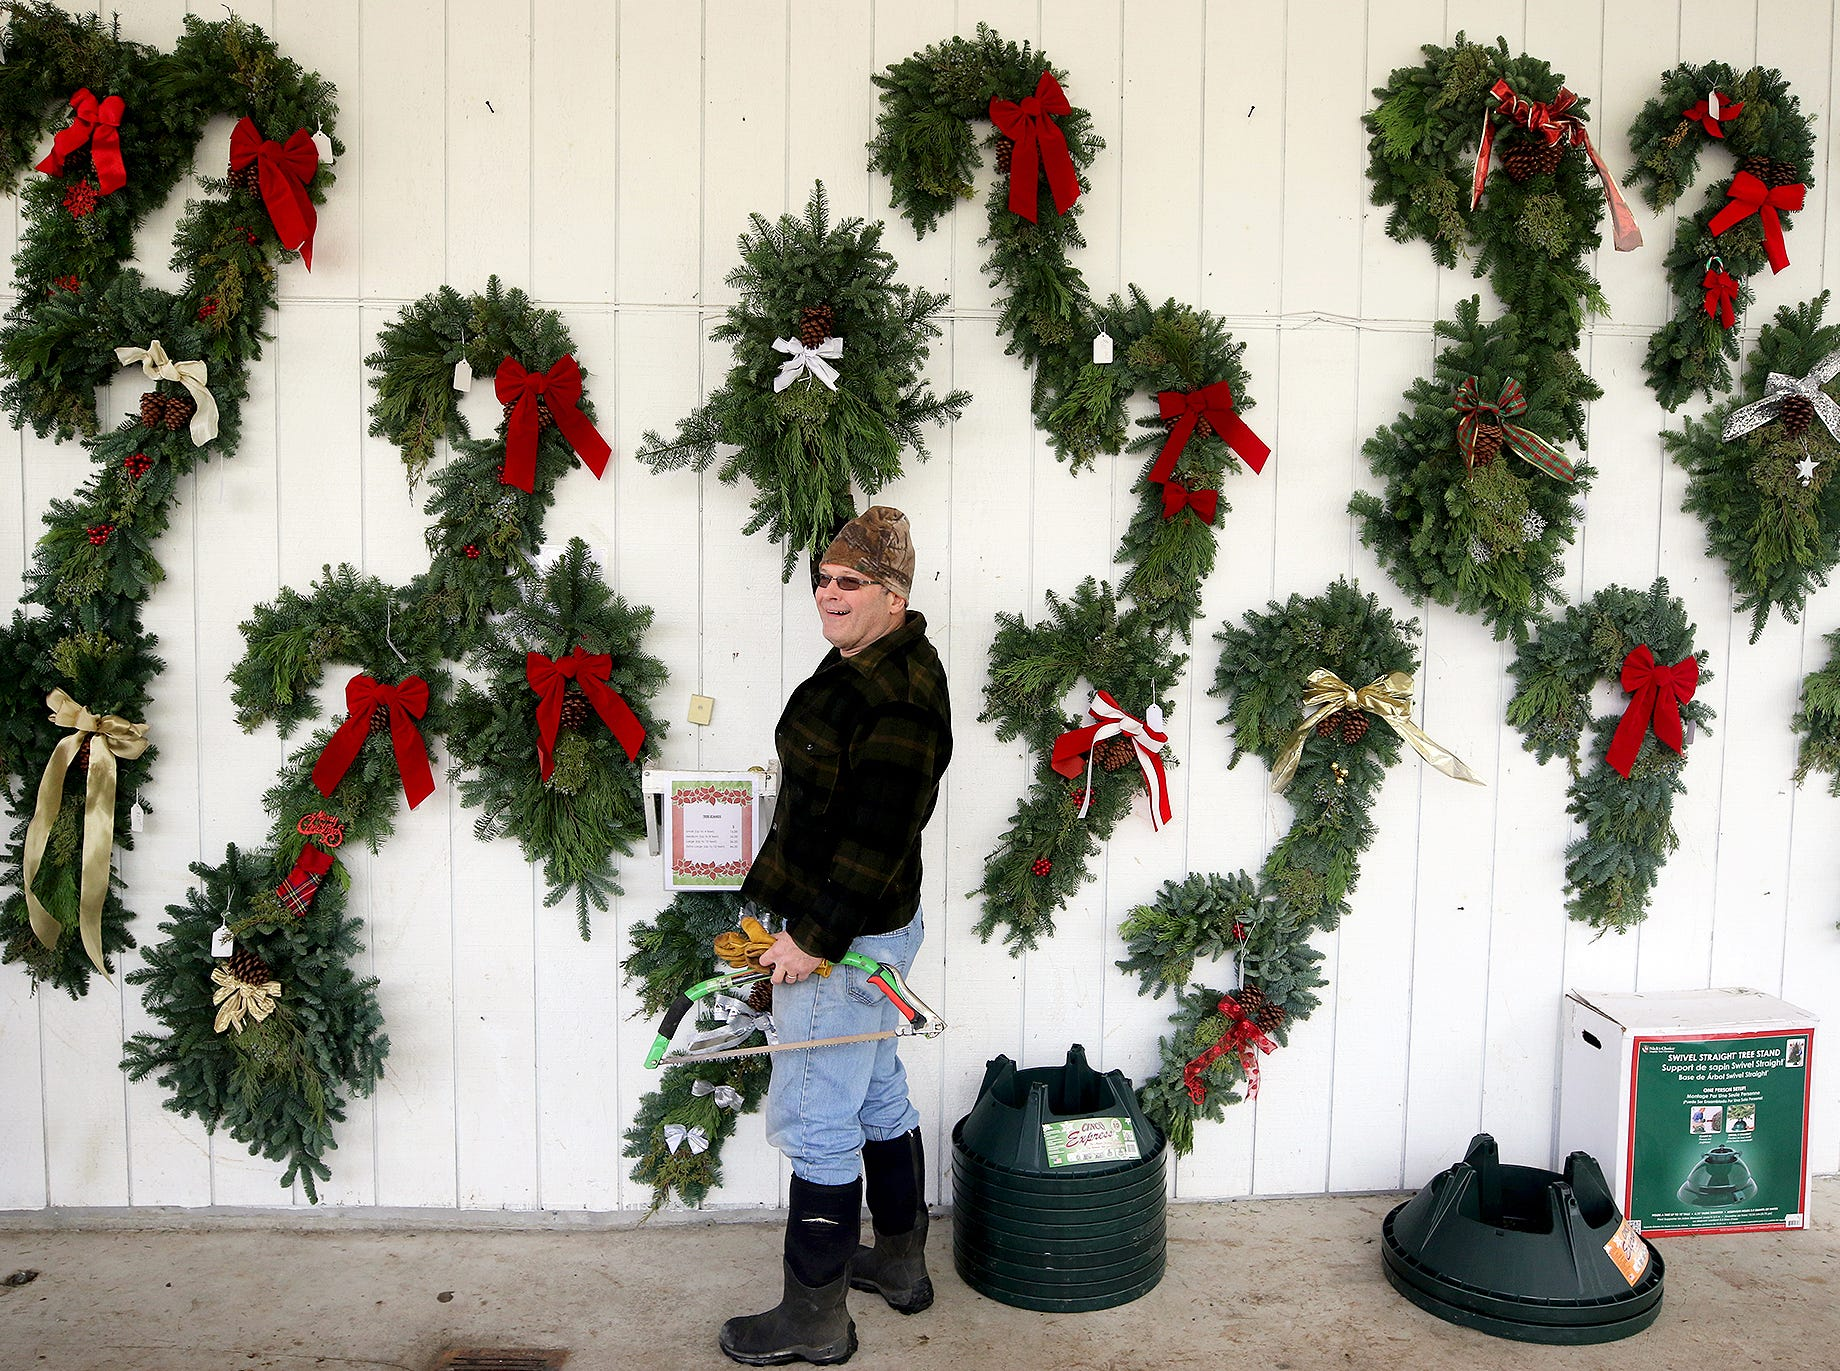 Dr. James Little of the All Creatures Animal Hospital in Gorst chooses hand made wreathes at the Bacon's Christmas Tree Farm on West Belfair Valley Rd, between Bremerton and Belfair on Monday, December, 10, 2018. He was getting the wreaths for his office Christmas party and to send some to family back east. The tree farm is closing early this year as Monday was the last day.